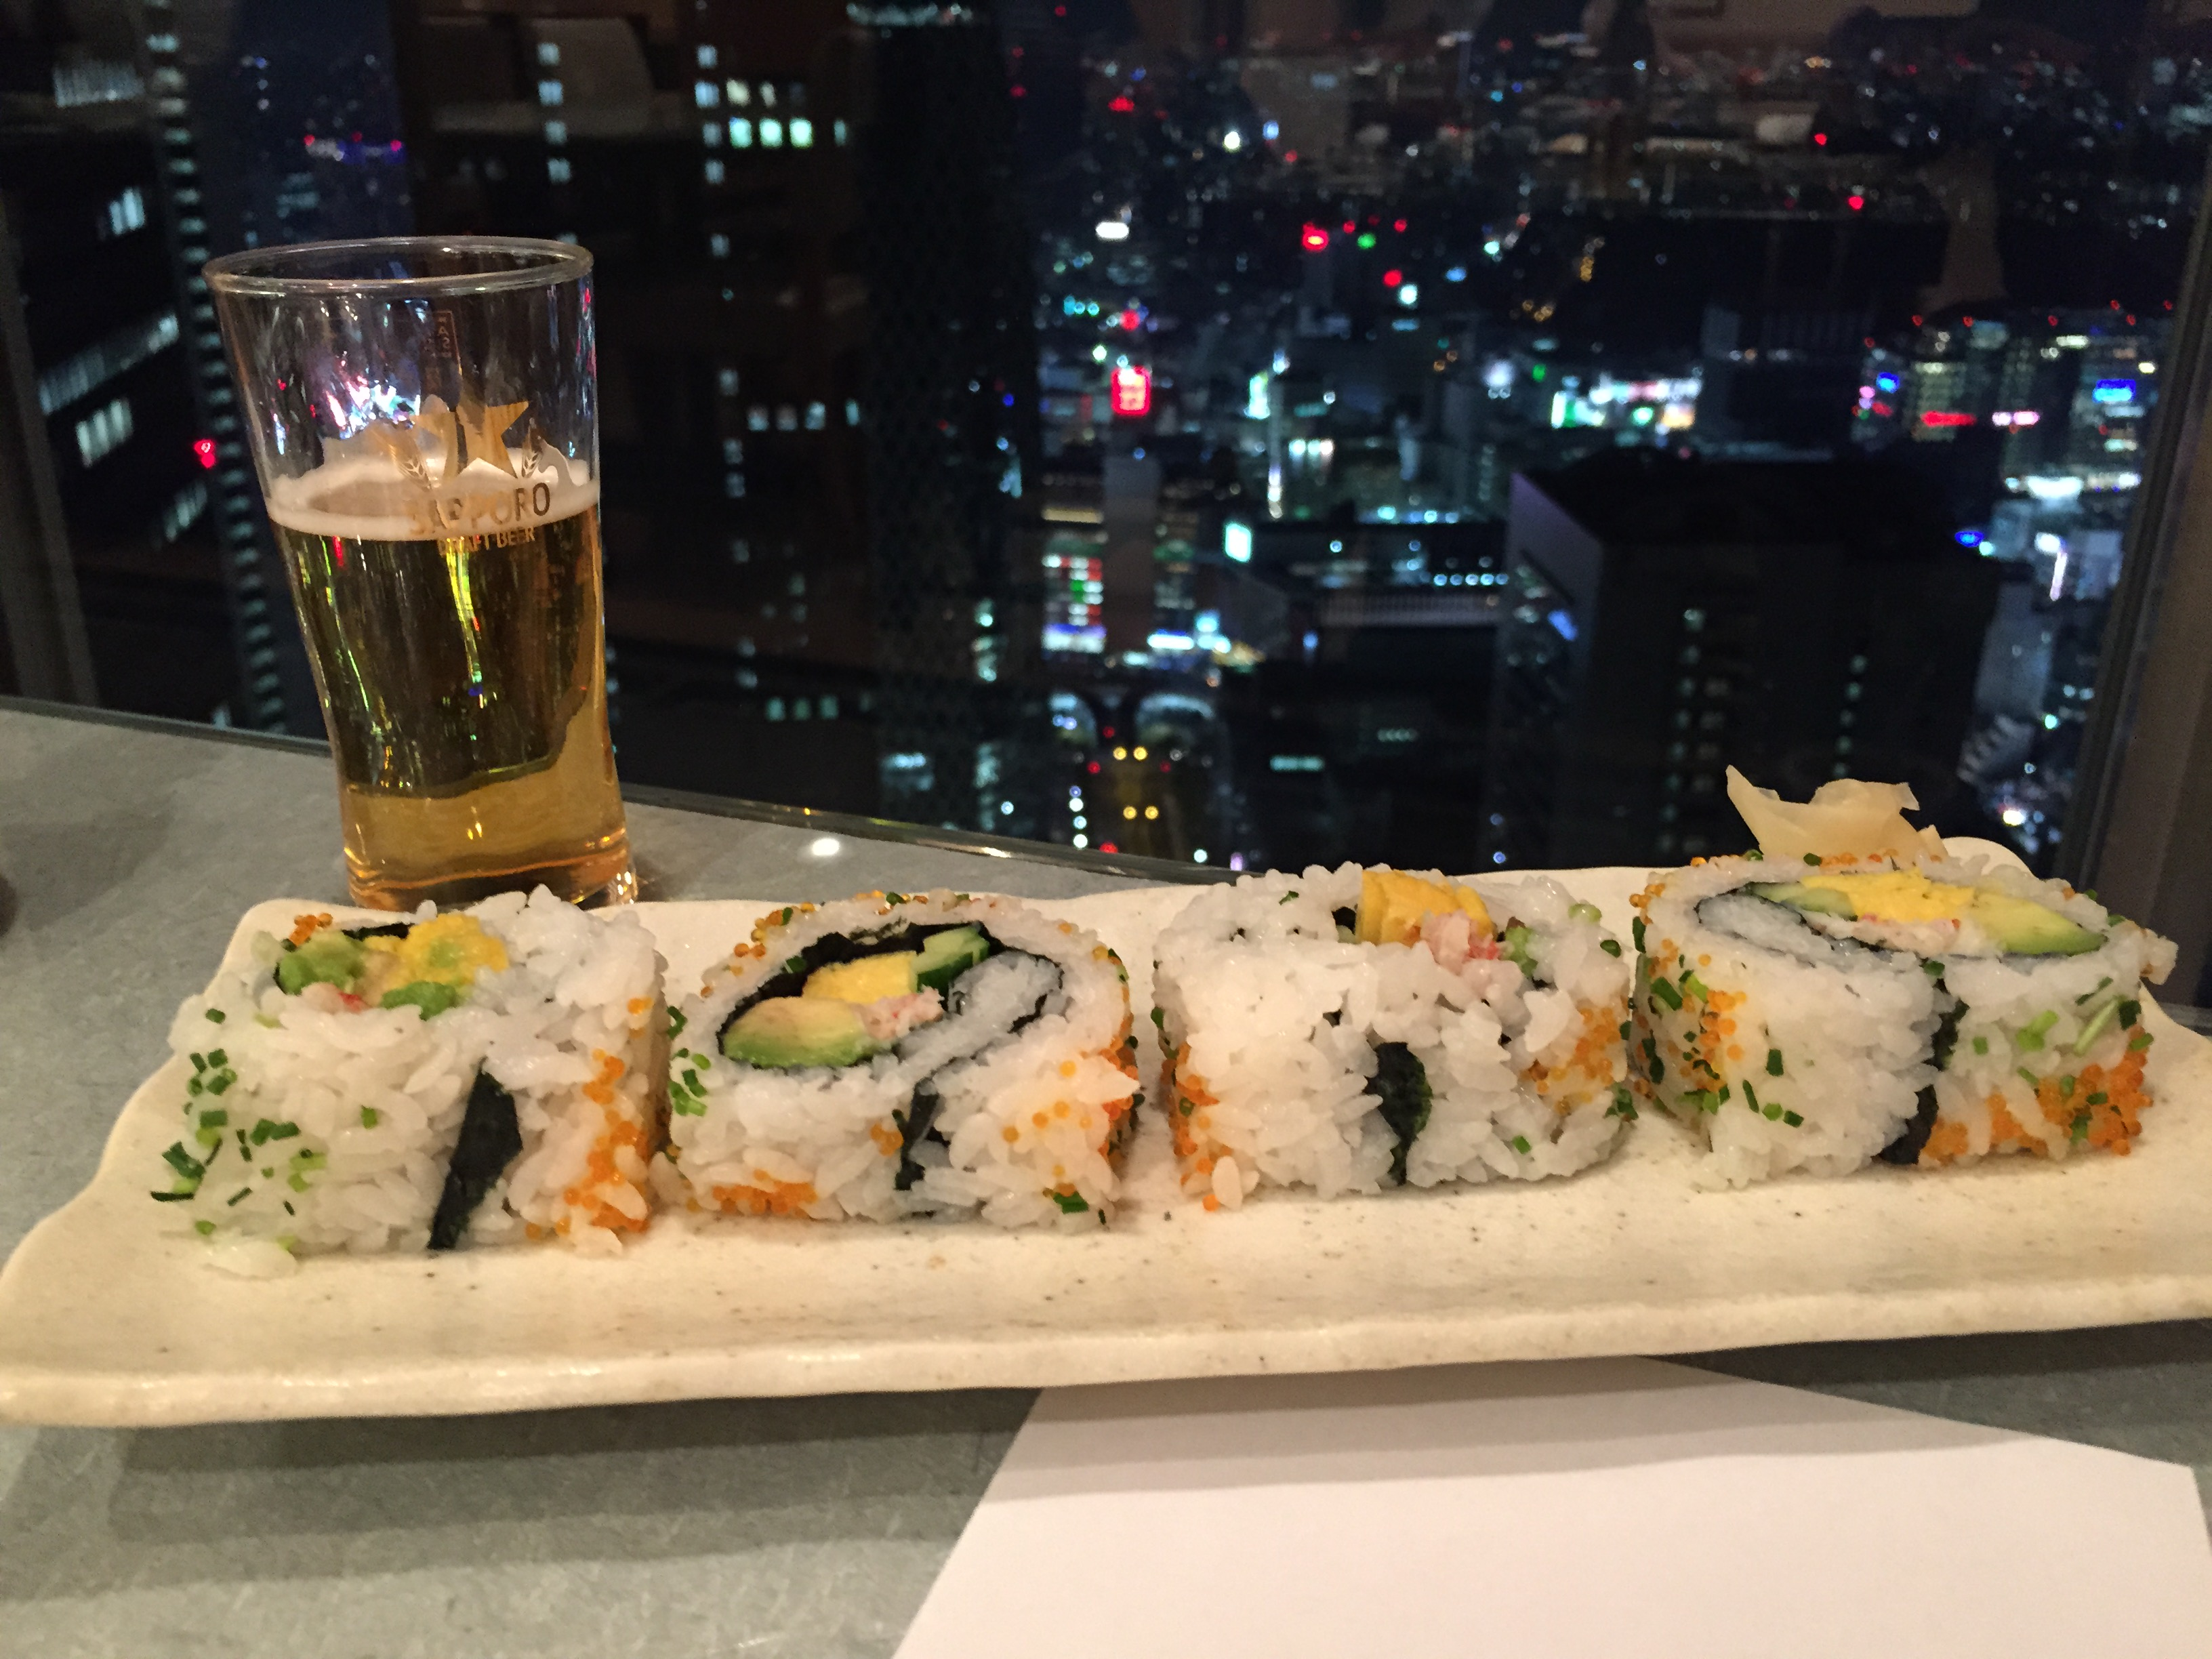 The sushi might taste even better with a view like this